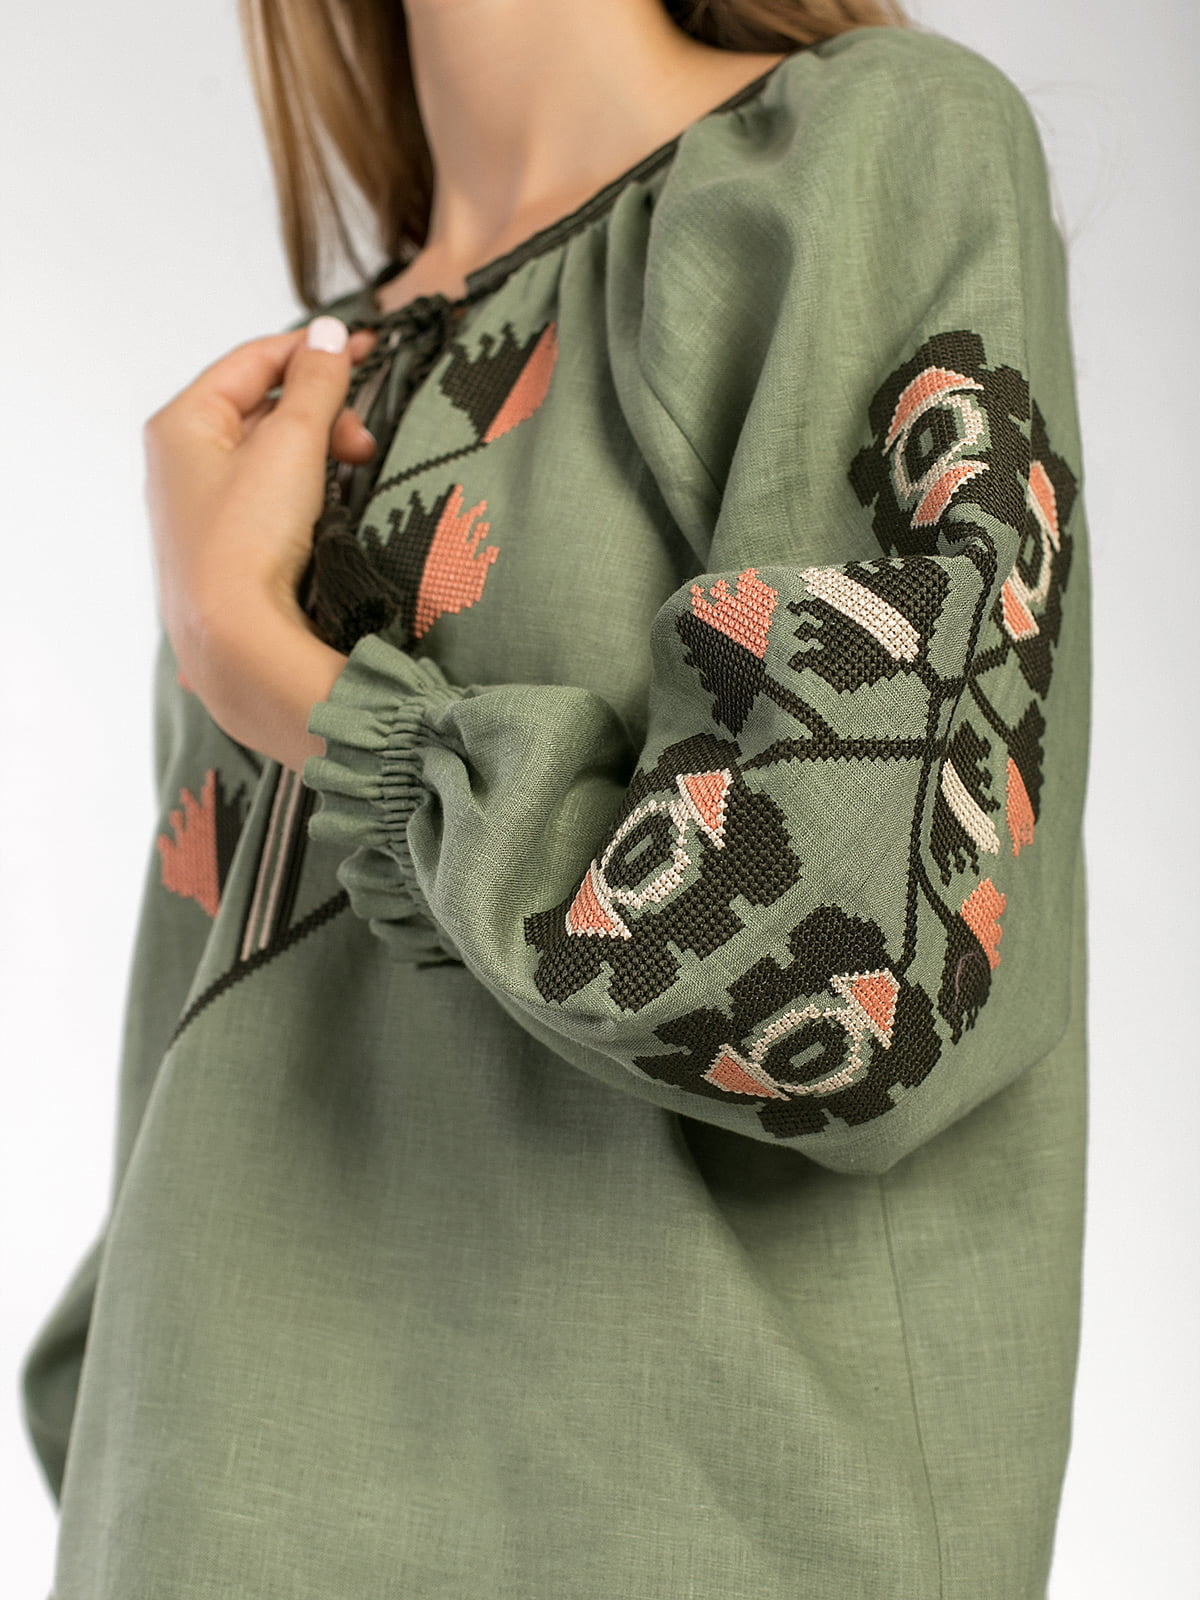 Embroidered shirt in olive linen Werba 3